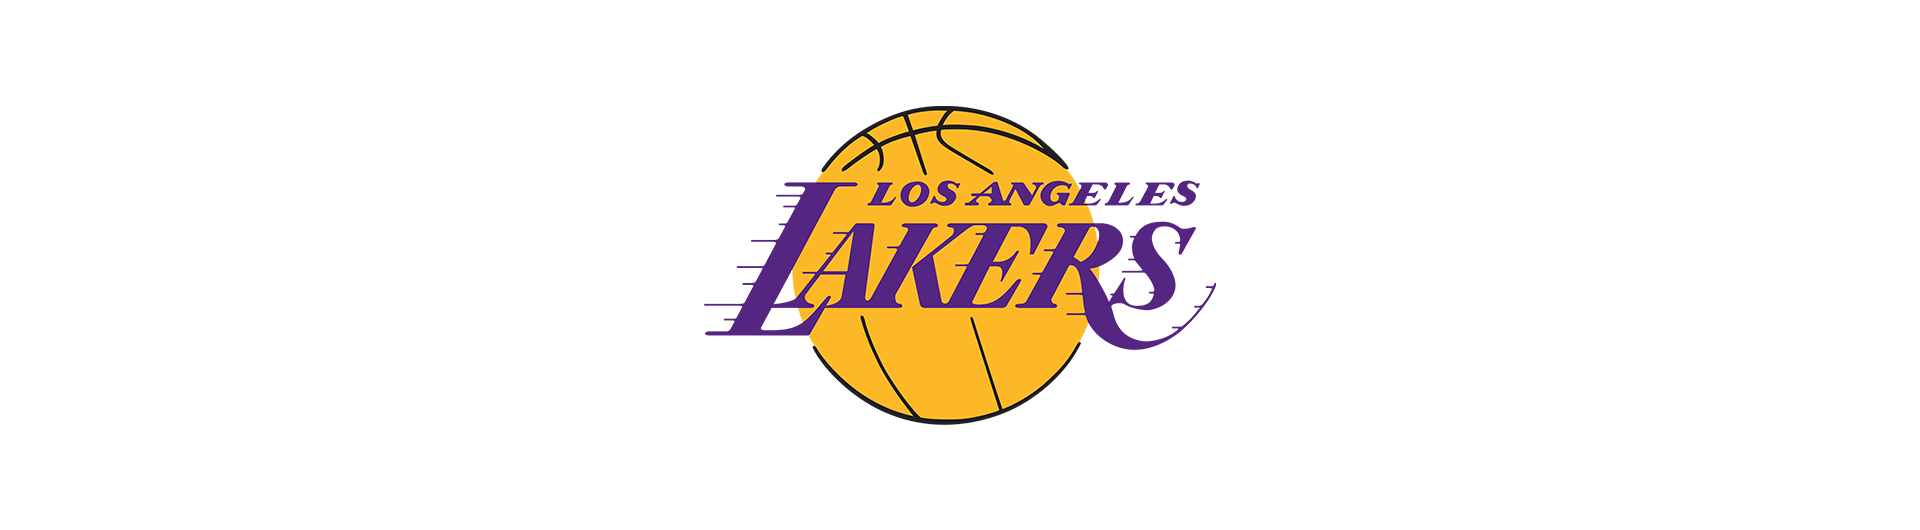 Los Angeles Lakers (LAL)